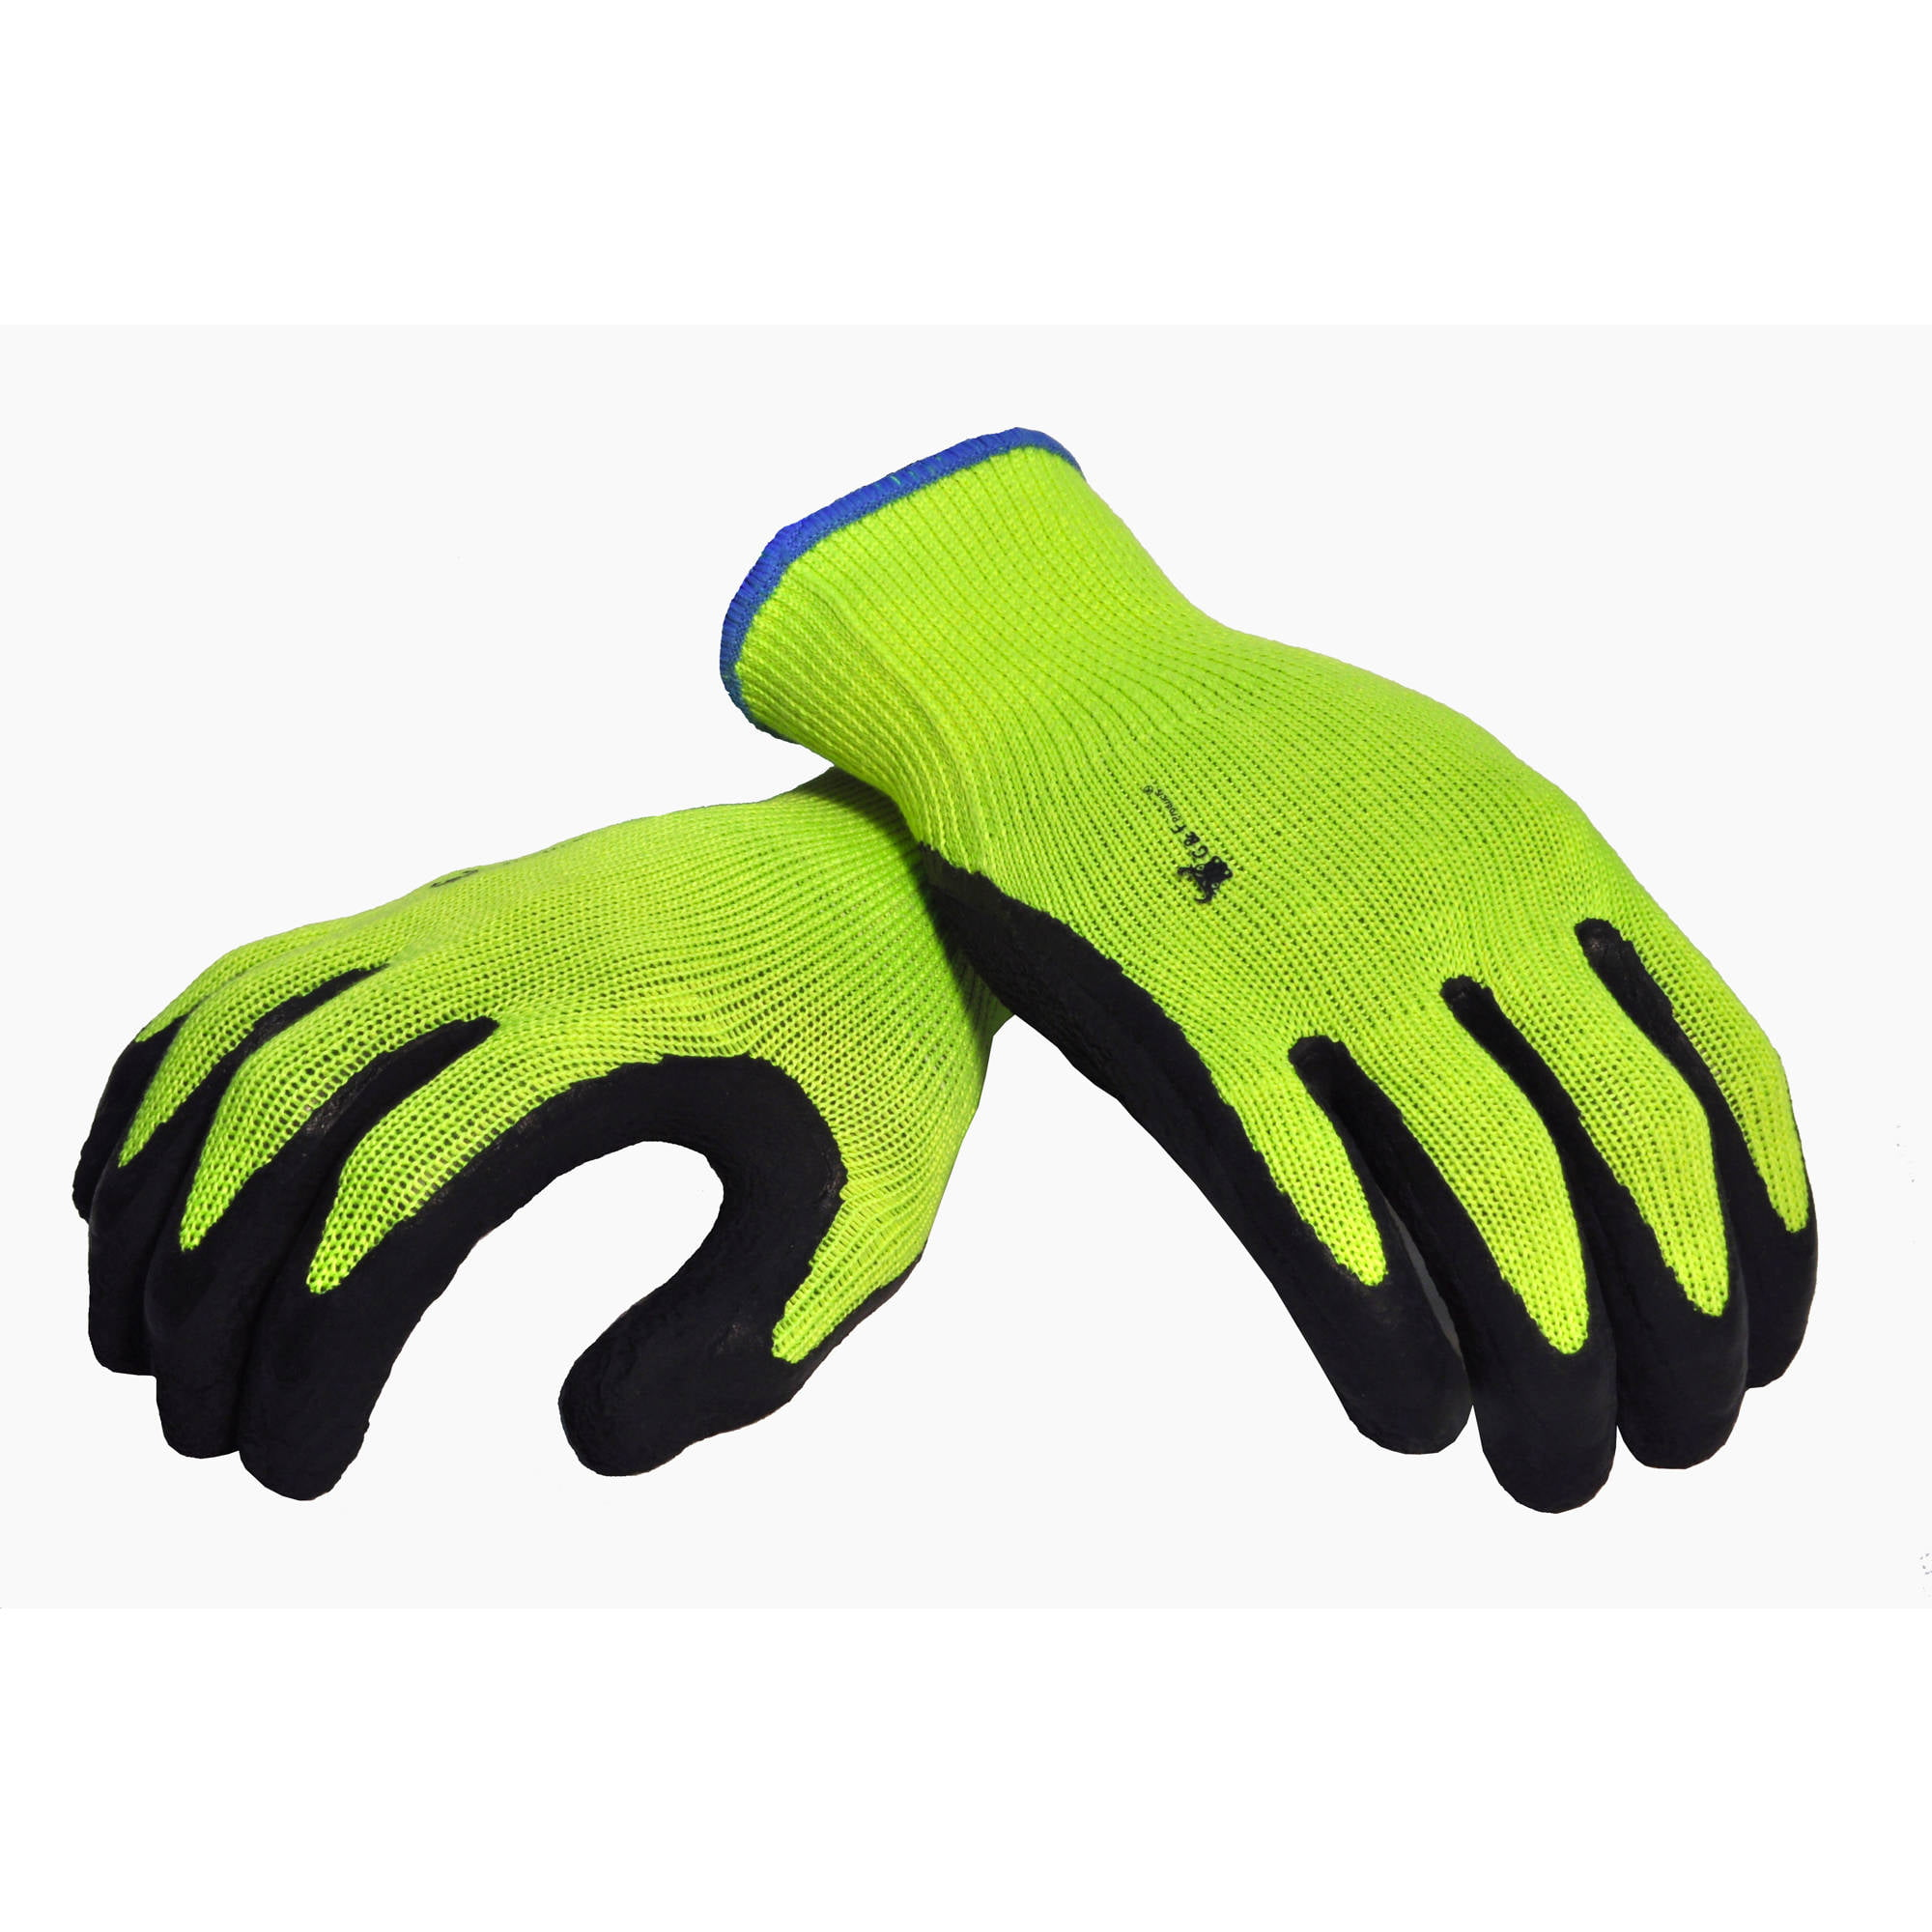 G & F Premium High-Visibility All-Purpose Safety Work and Garden Gloves with Micro-foam Double Texture-Coating, Men and... by G & F